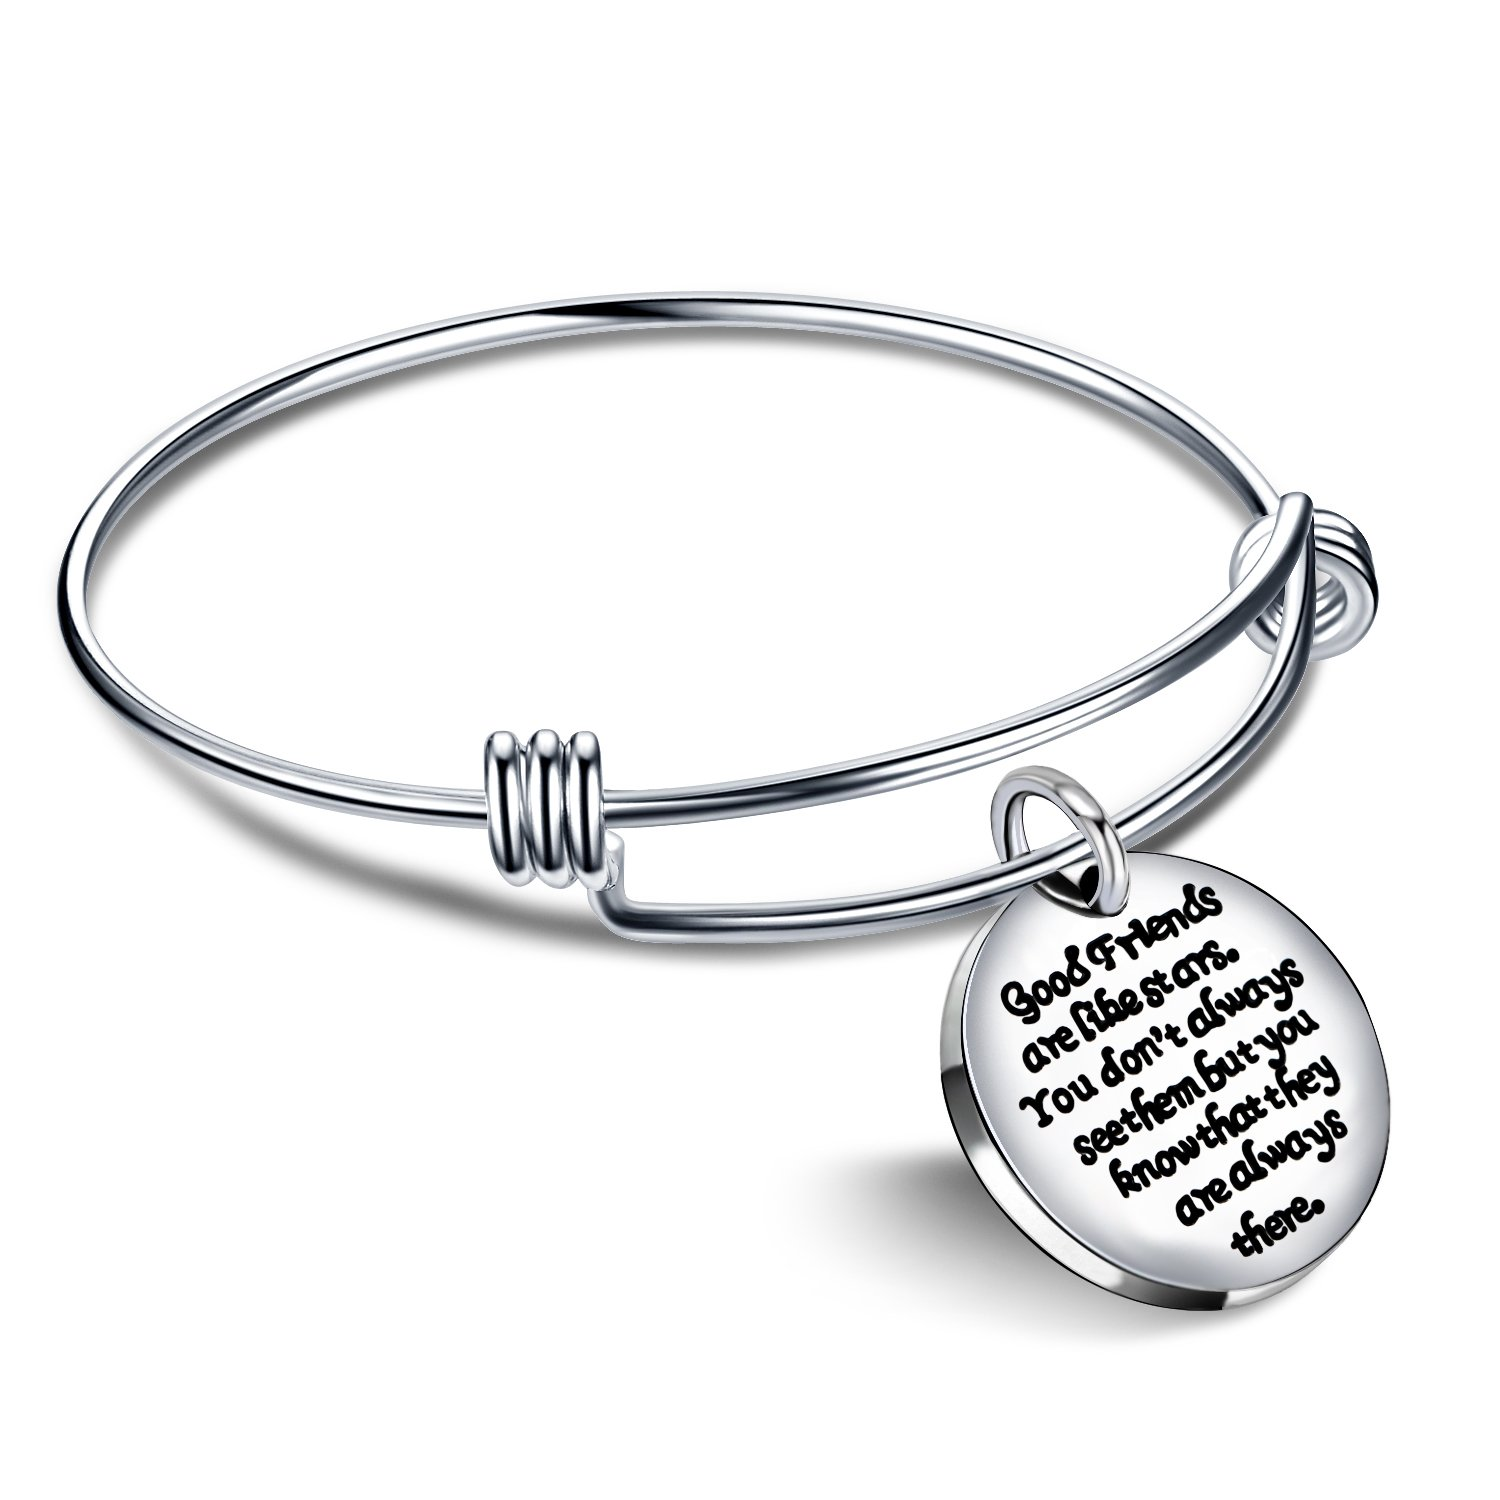 lauhonmin Expandable Bangle Bracelet - Good Friends are Like Stars Don't Always See Them but They are Always There AB037-CA